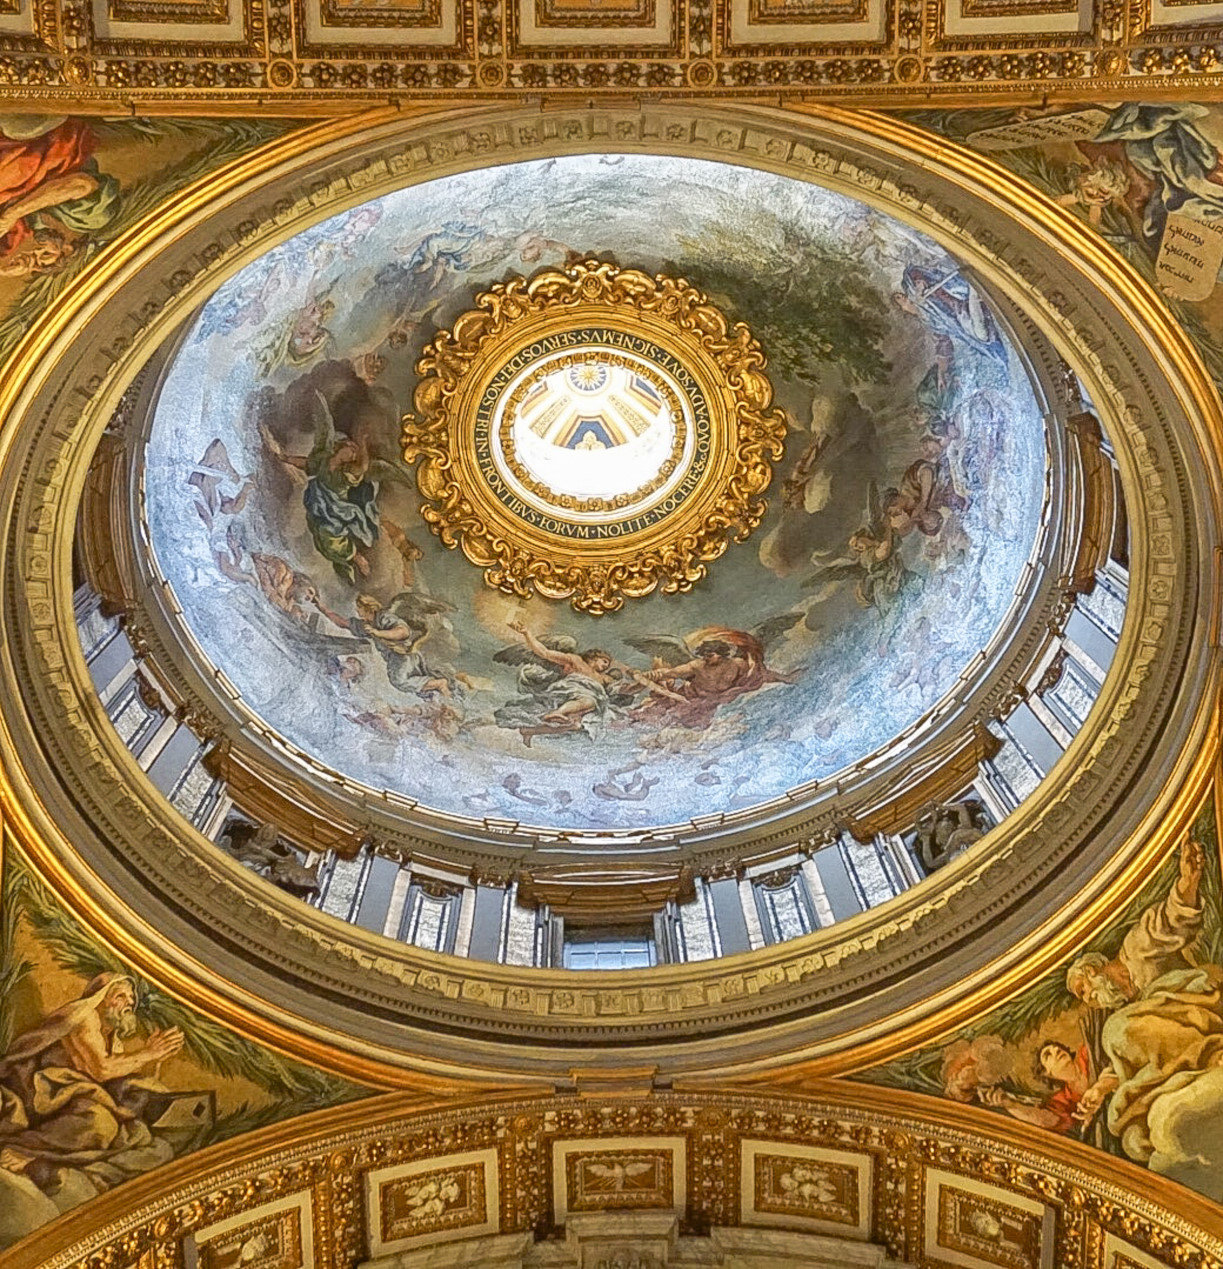 Interior Ceiling of St Peter's Basilica